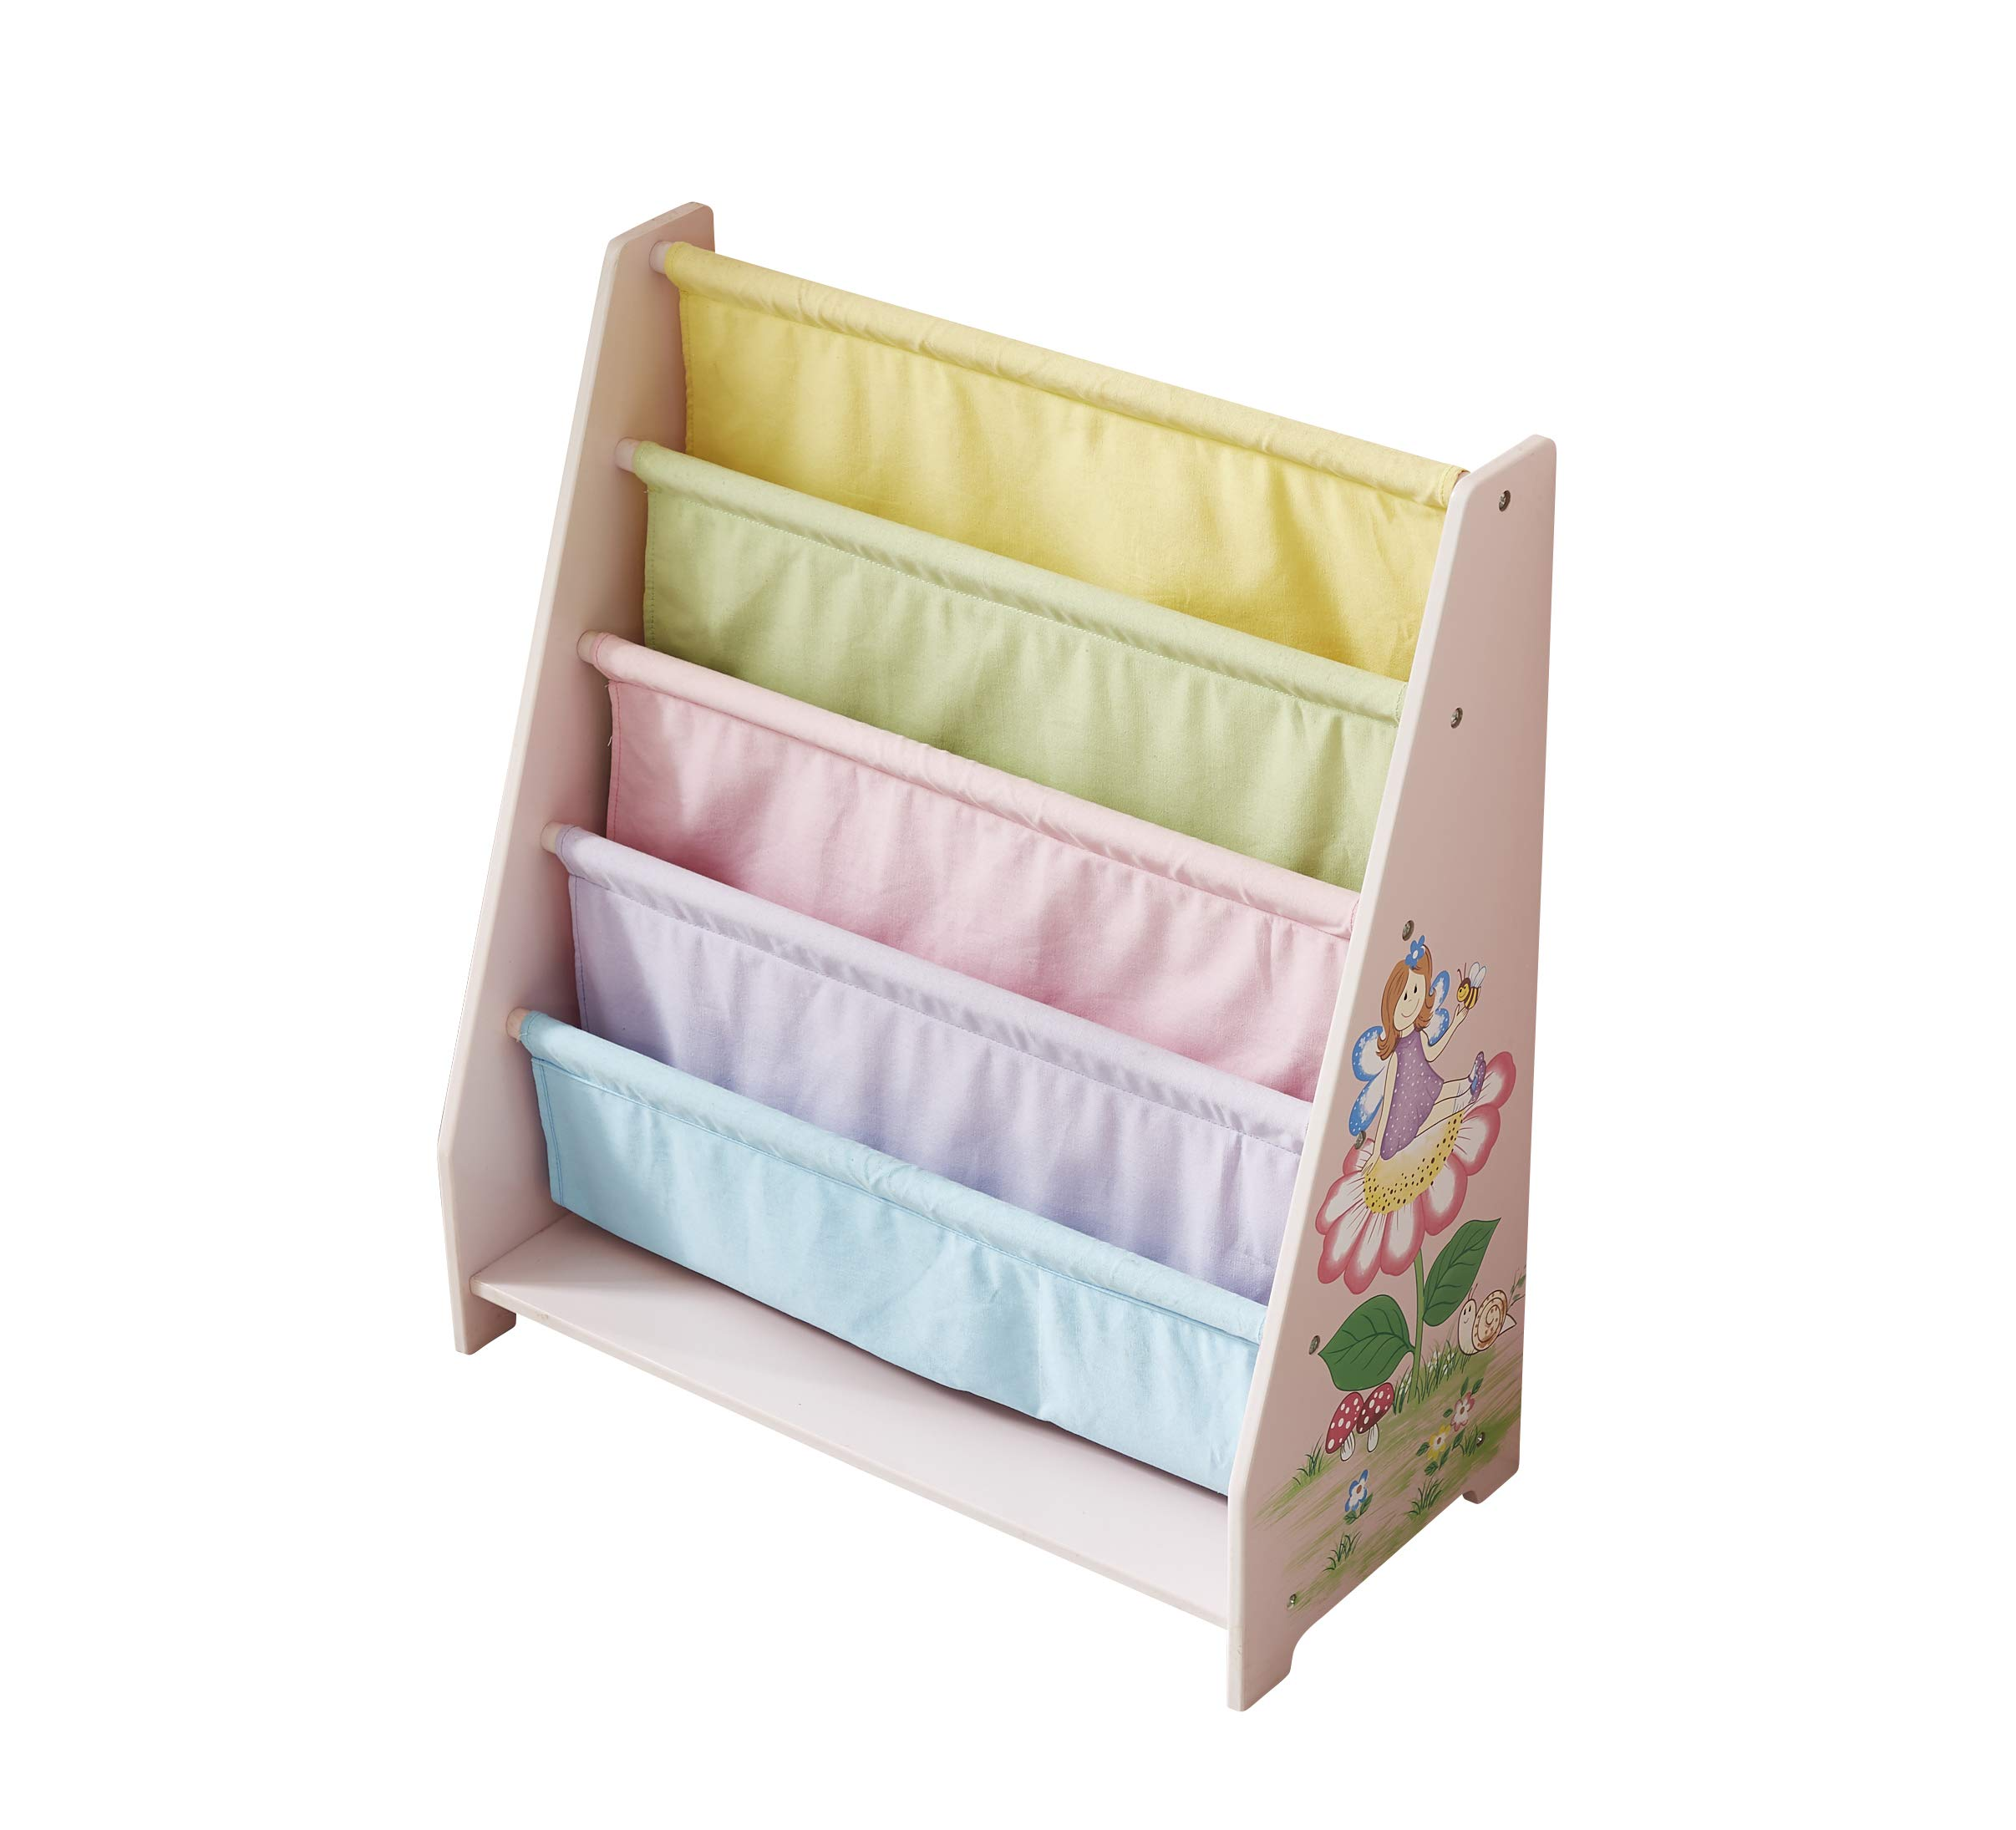 WODENY Childrens Bookshelf Canvas, Wooden Kids Book Shelf, Sling Book Rack for Toddlers Girls Boys Ages 3+ (Pink)